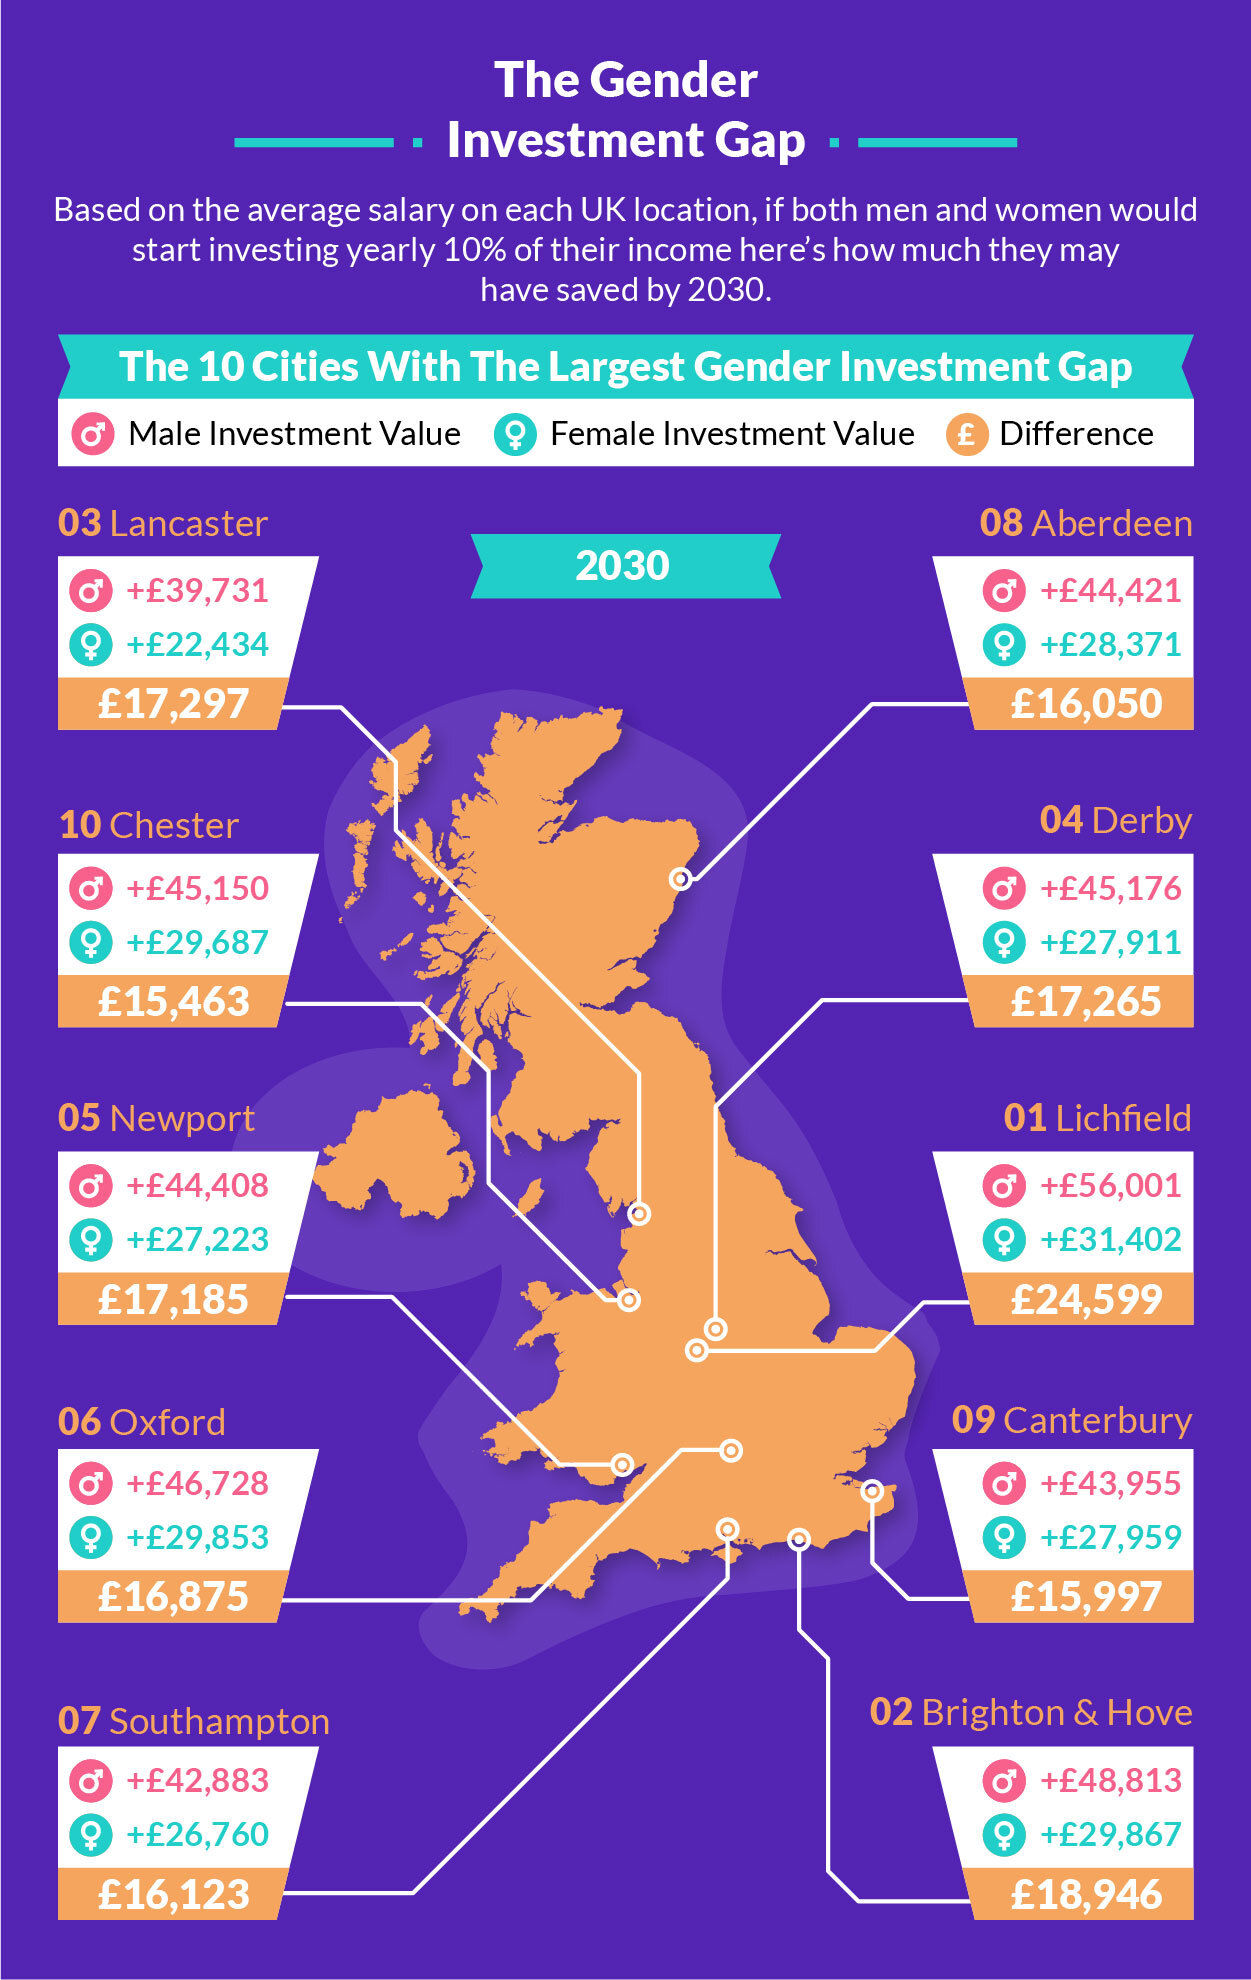 UK investors gender gap - How much men may be saving compared to women in 2030